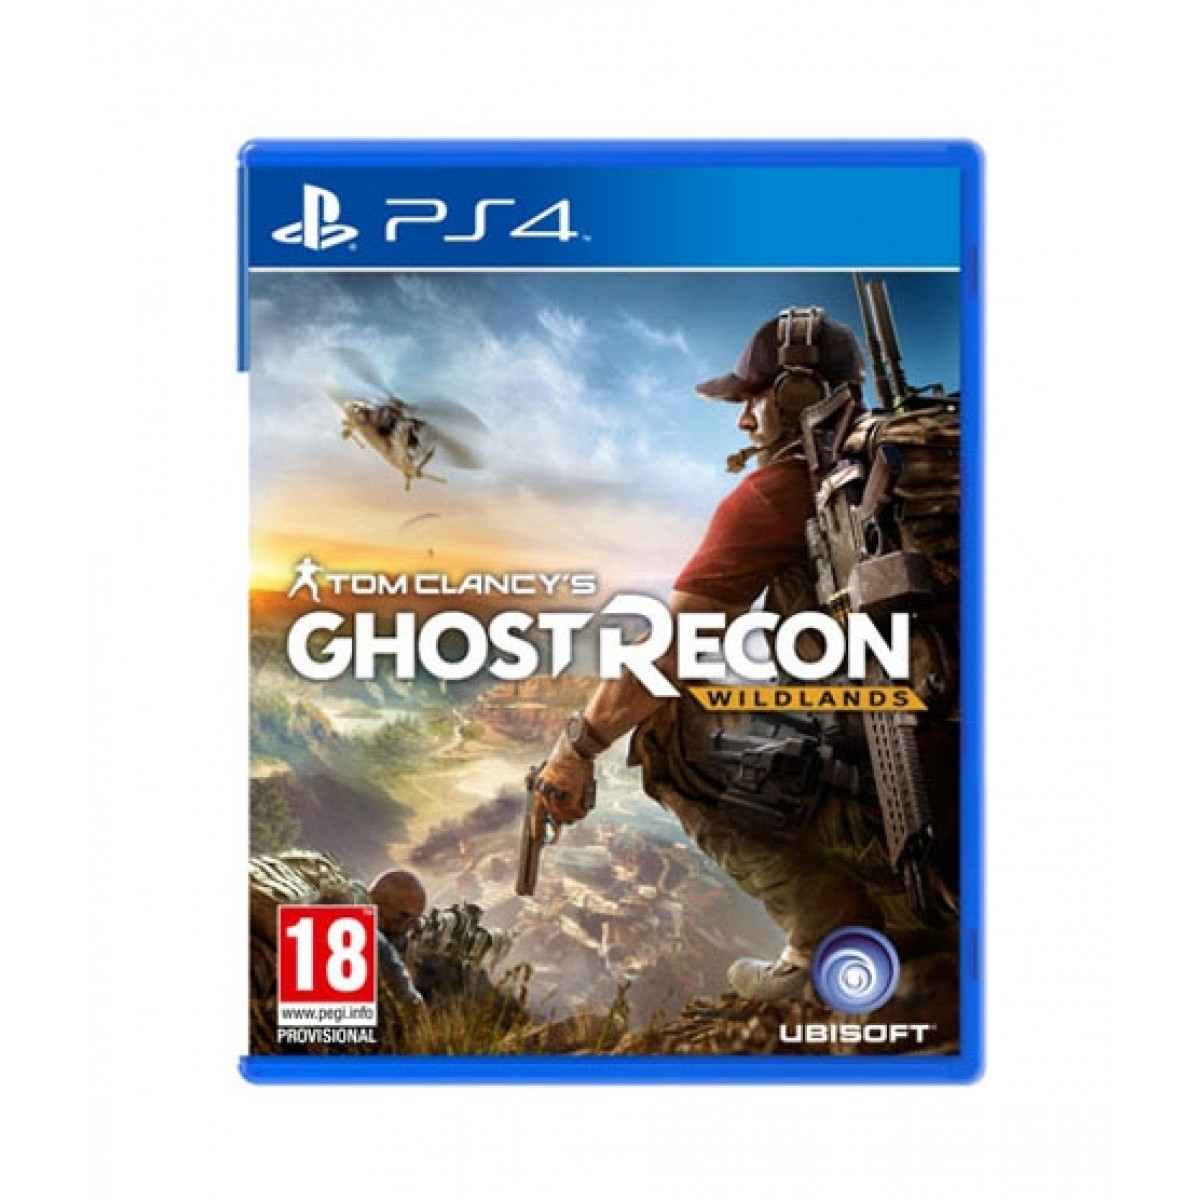 Tom Clancy's Ghost Recon Wildlands Game For PS4